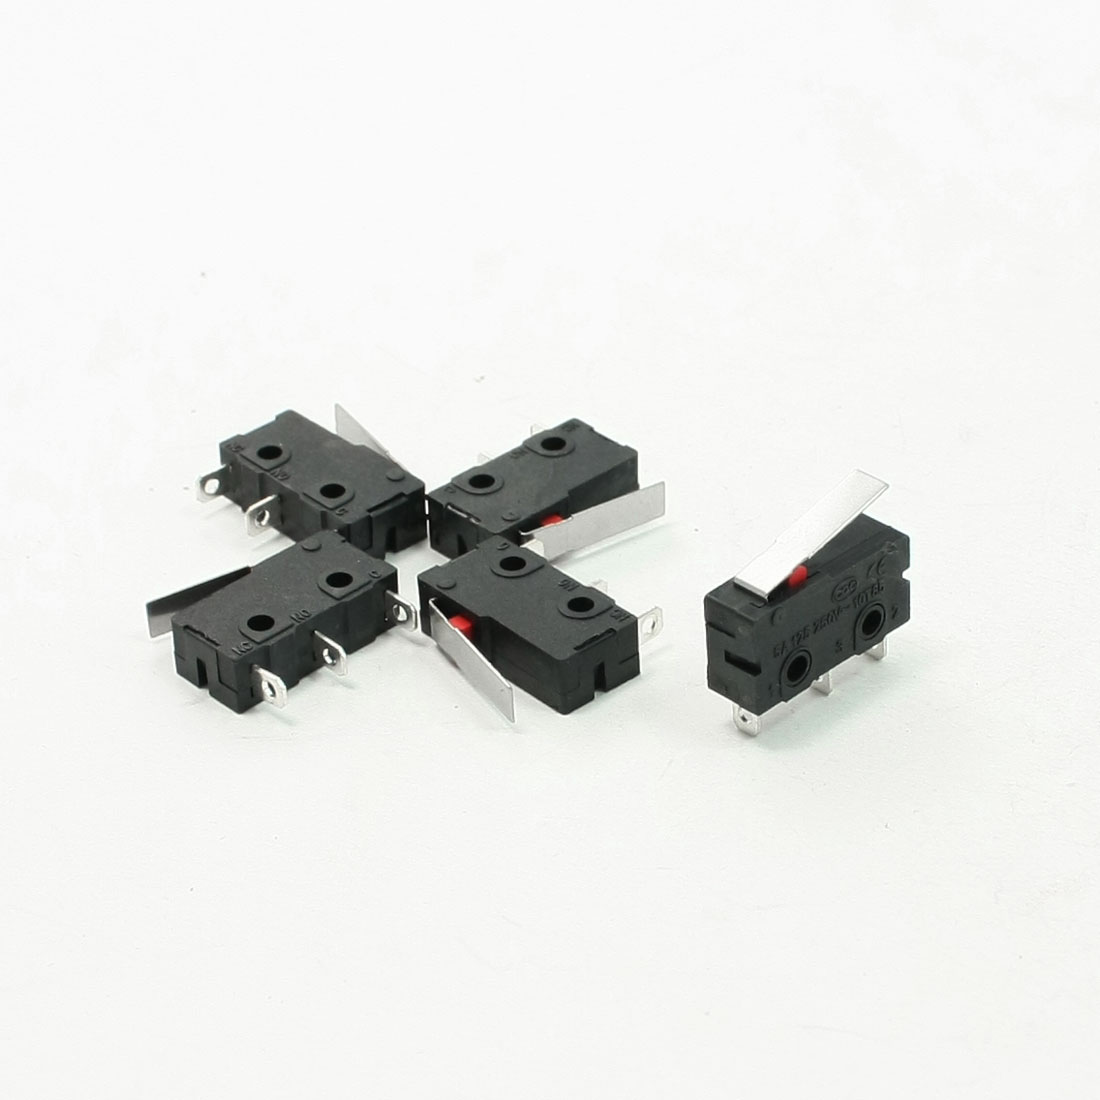 5 Pcs AC 125V 5A SPDT Short Straight Hinge Lever Miniature Micro Limit Switch